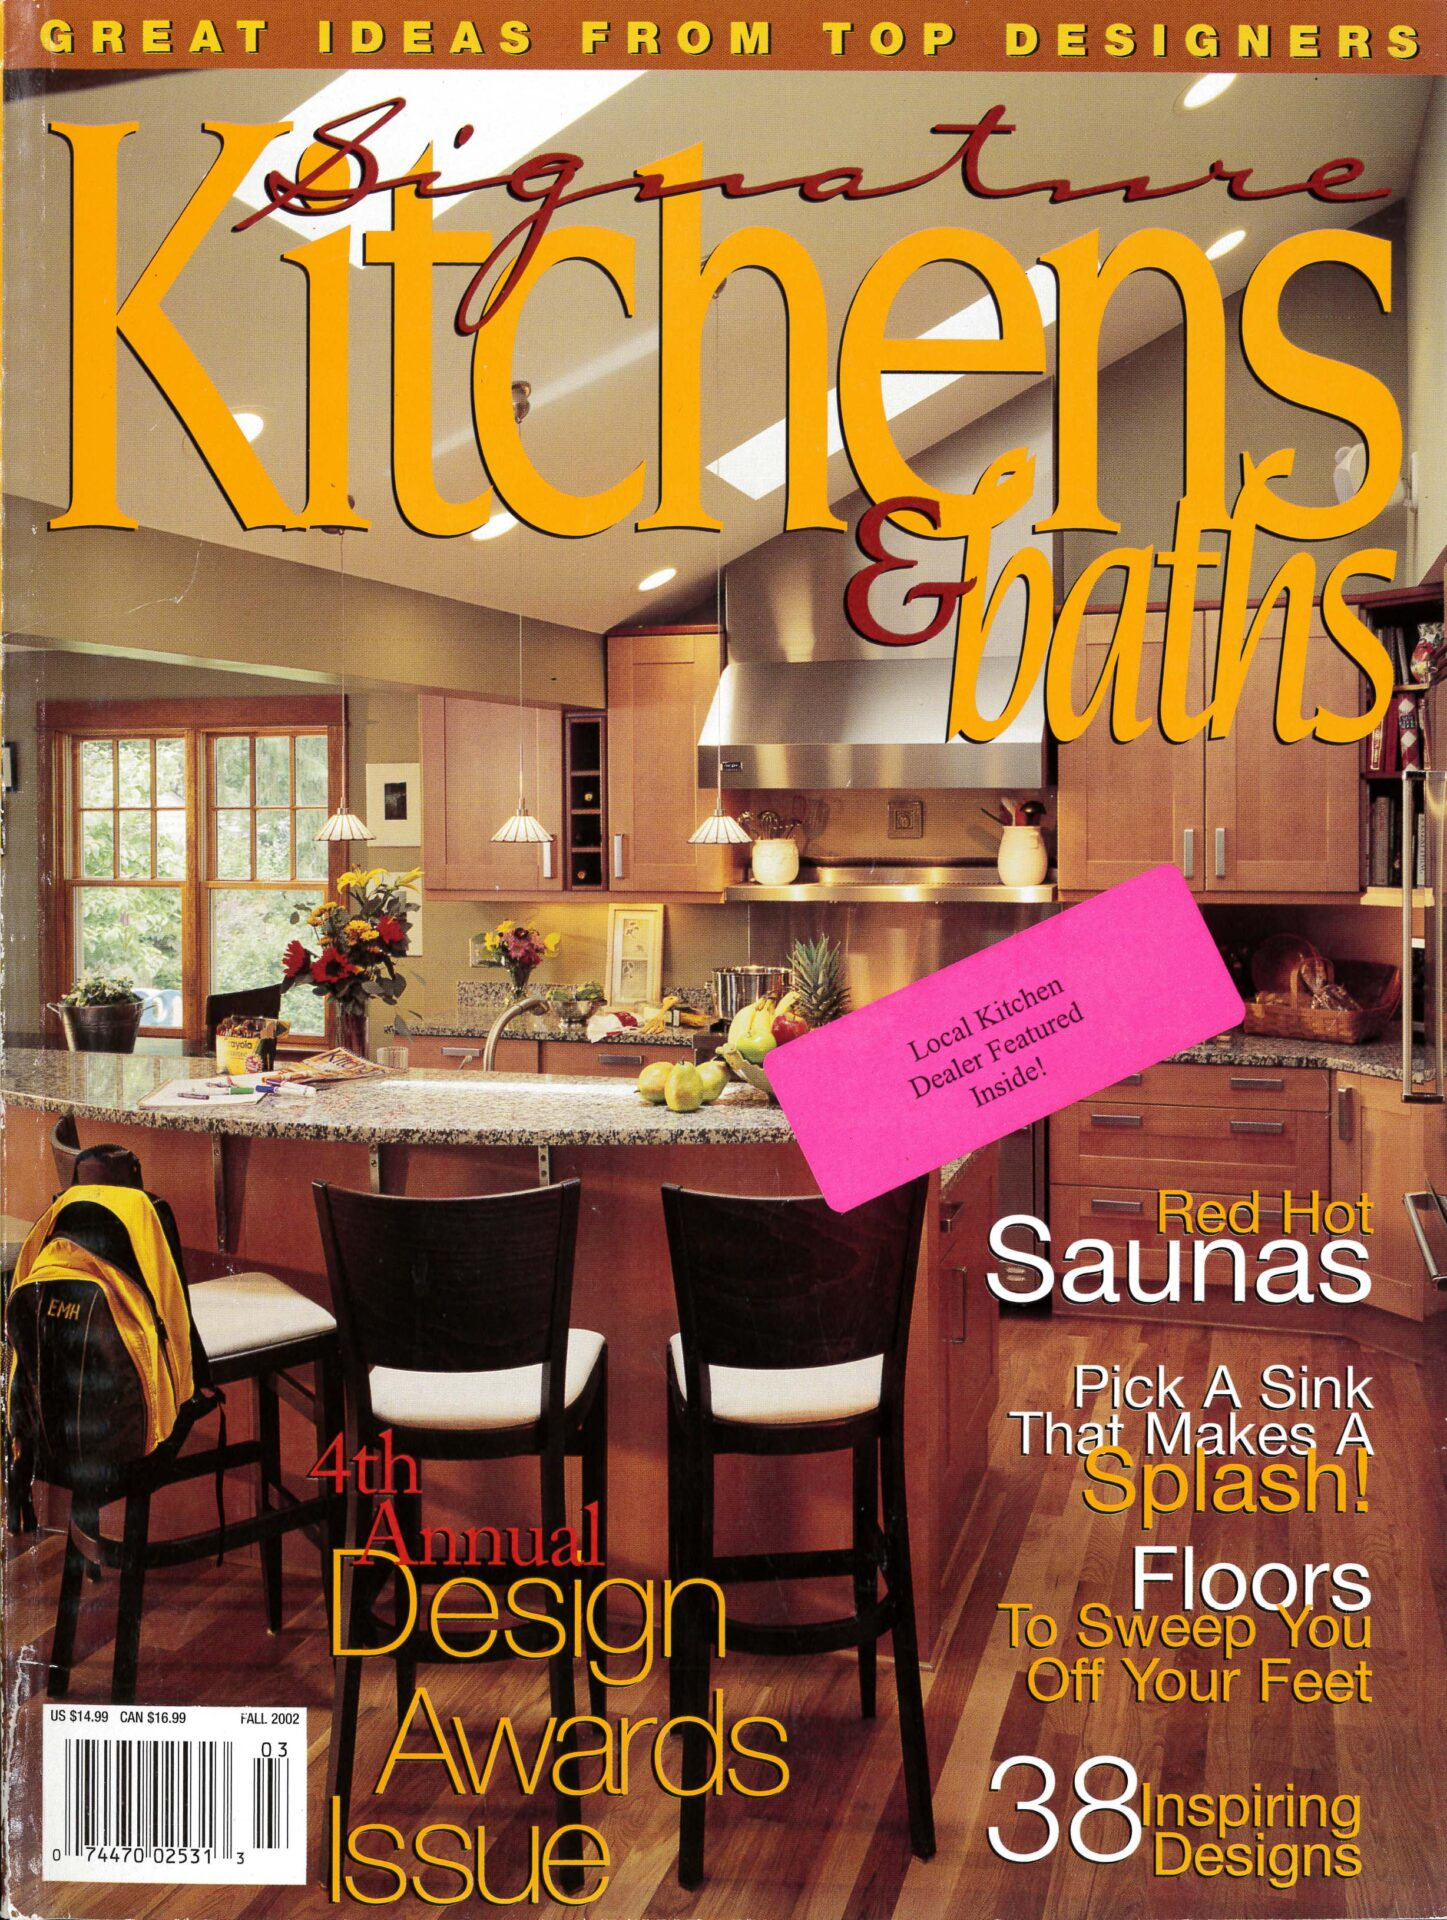 Signature Kitchen & Bath Ideas,Fall 2002